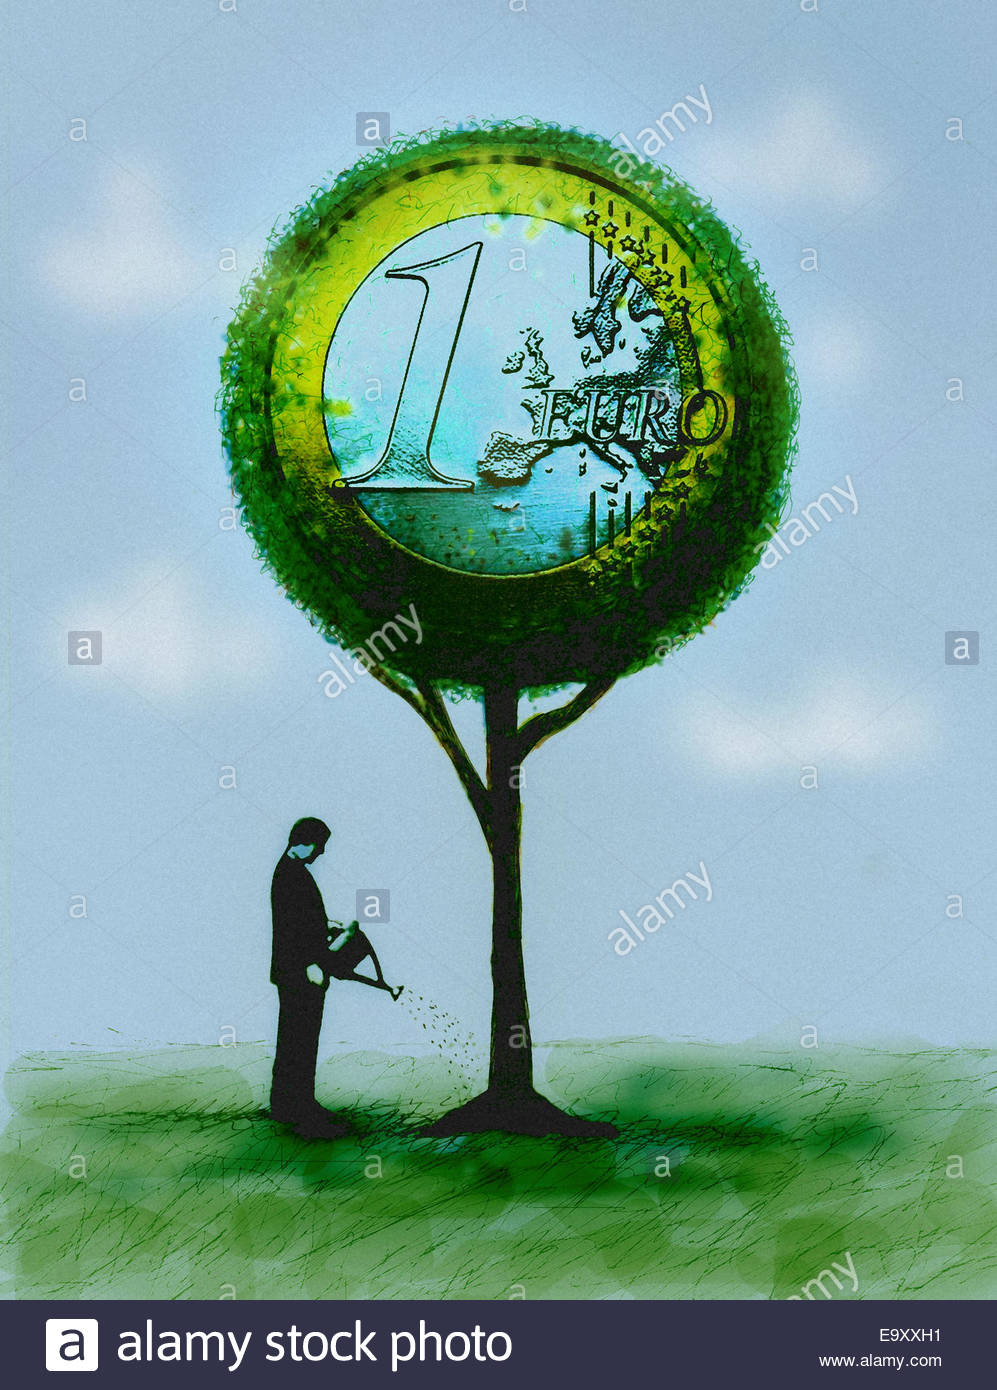 Businessman watering Euro coin money tree - Stock Image